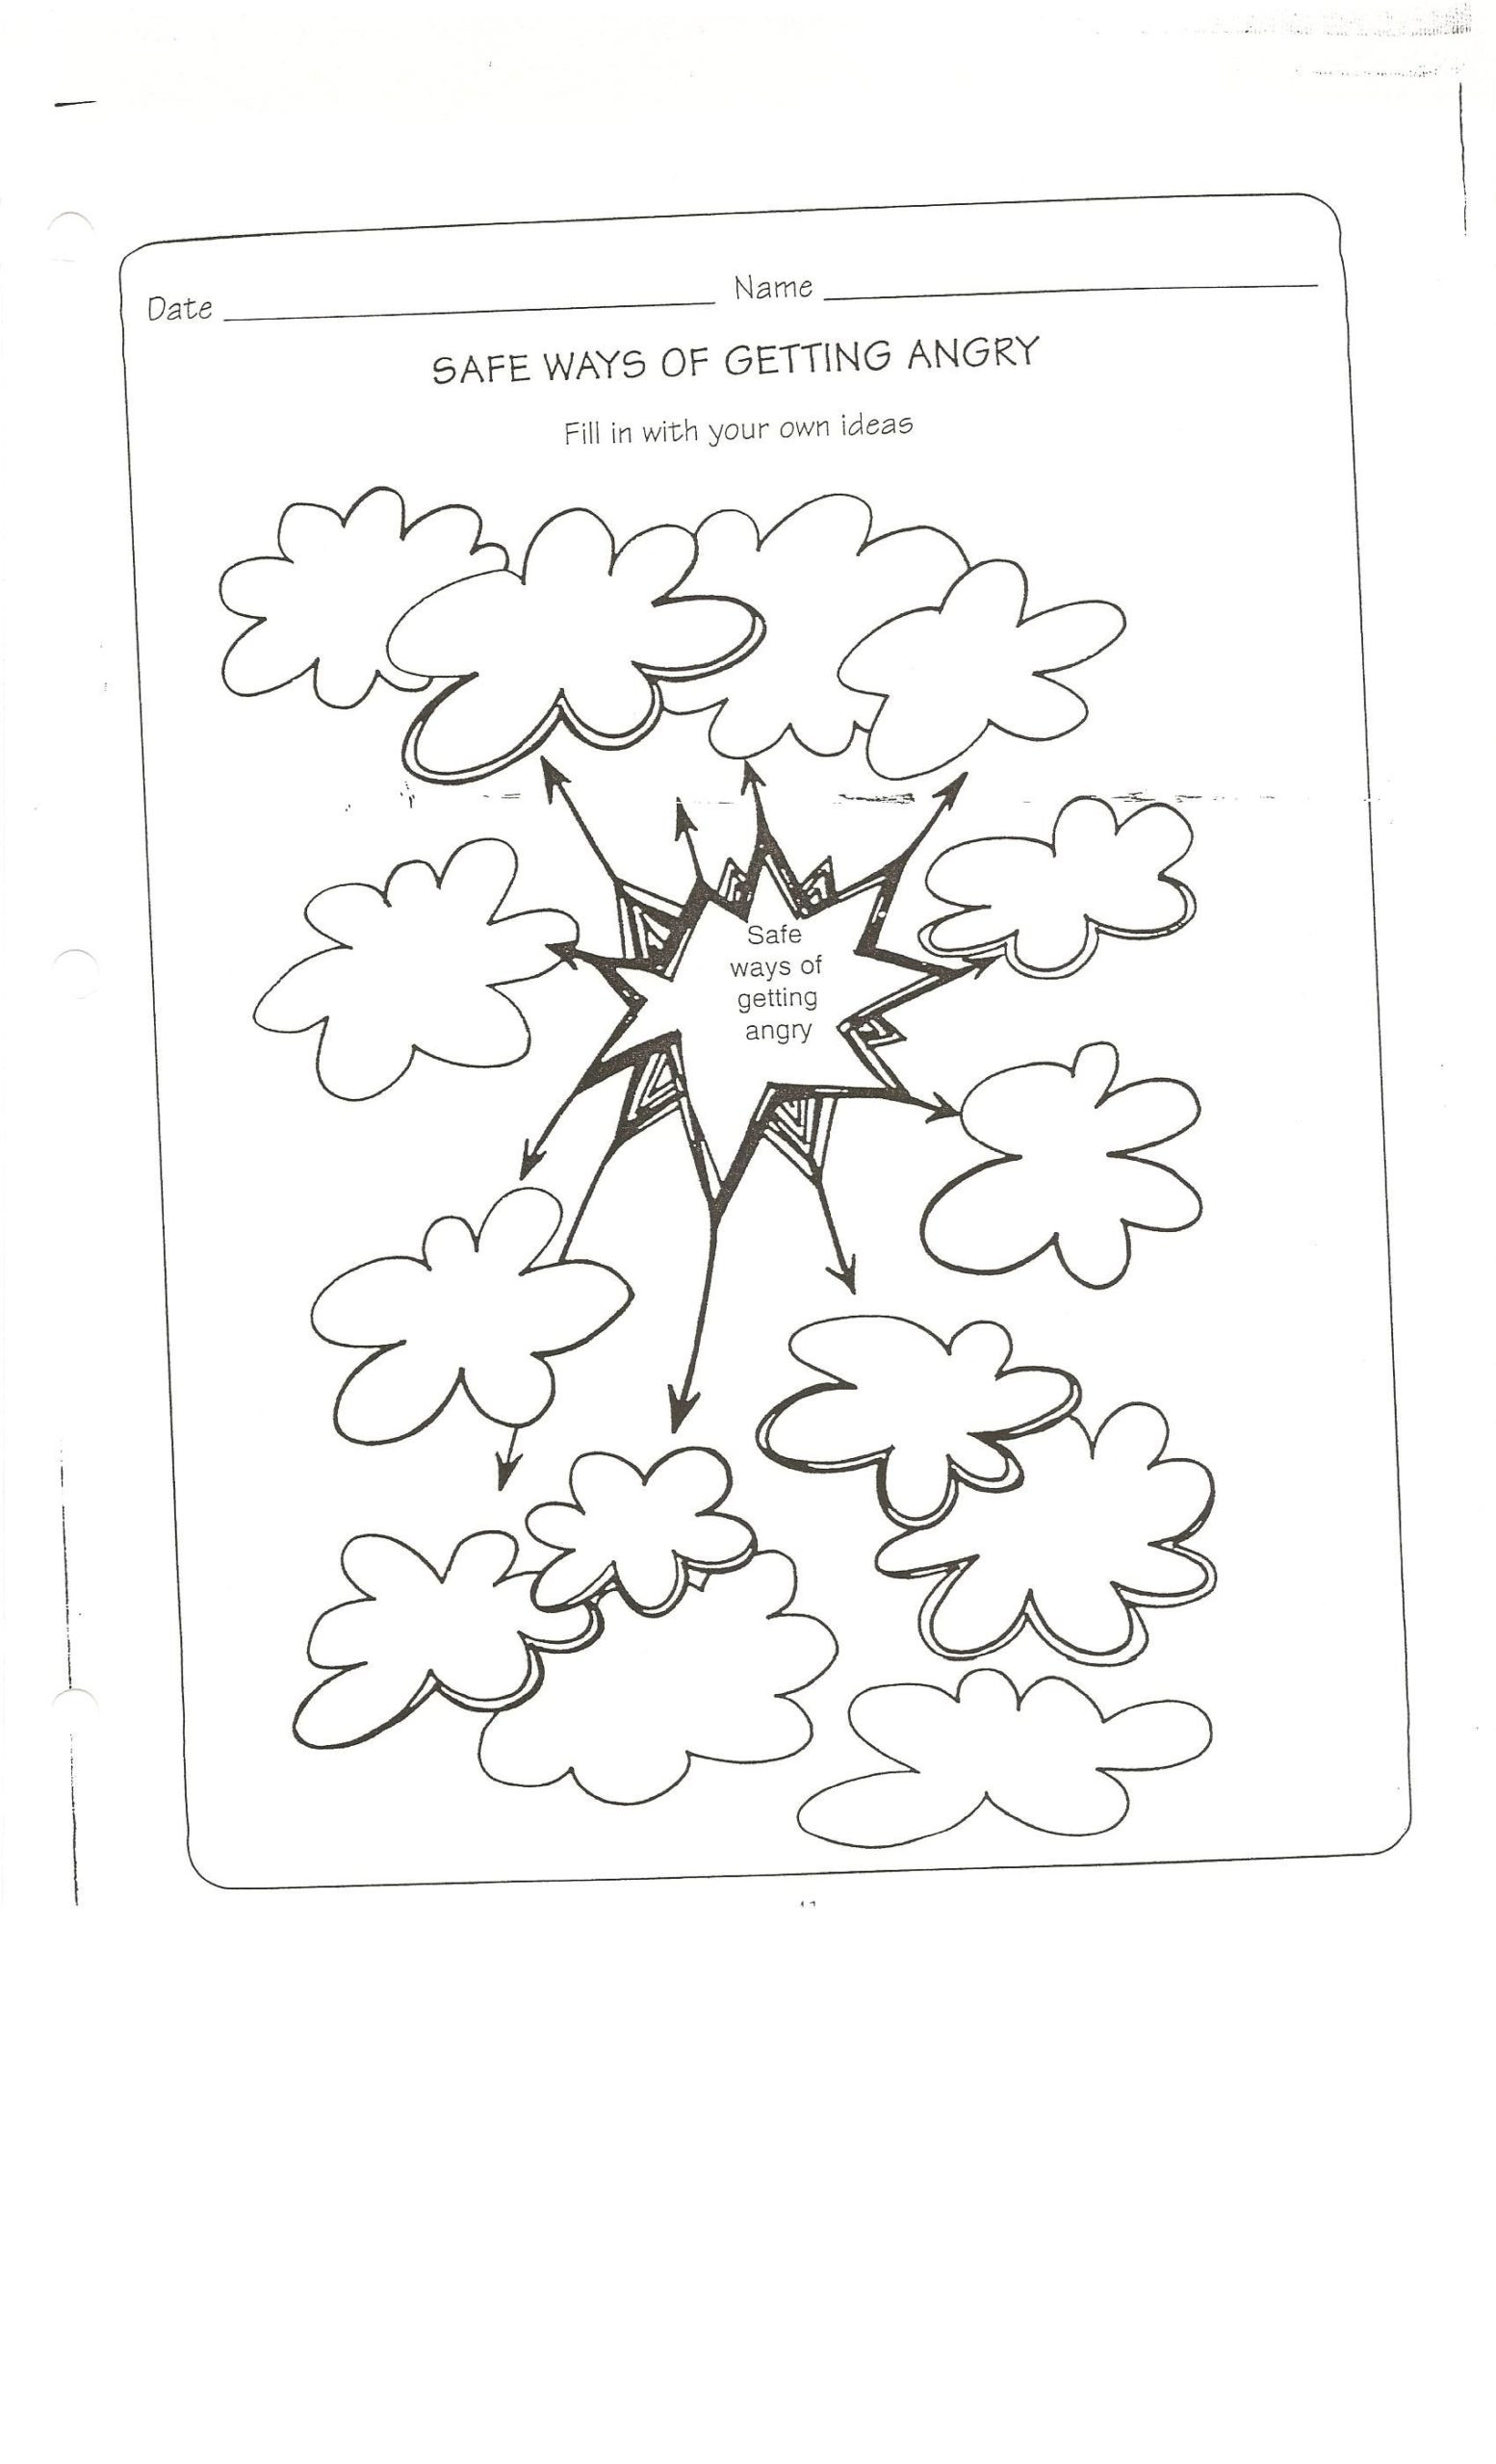 Free Printable Counseling Worksheets Safe Way to Get Angry Worksheet Conflict Resolution Coping